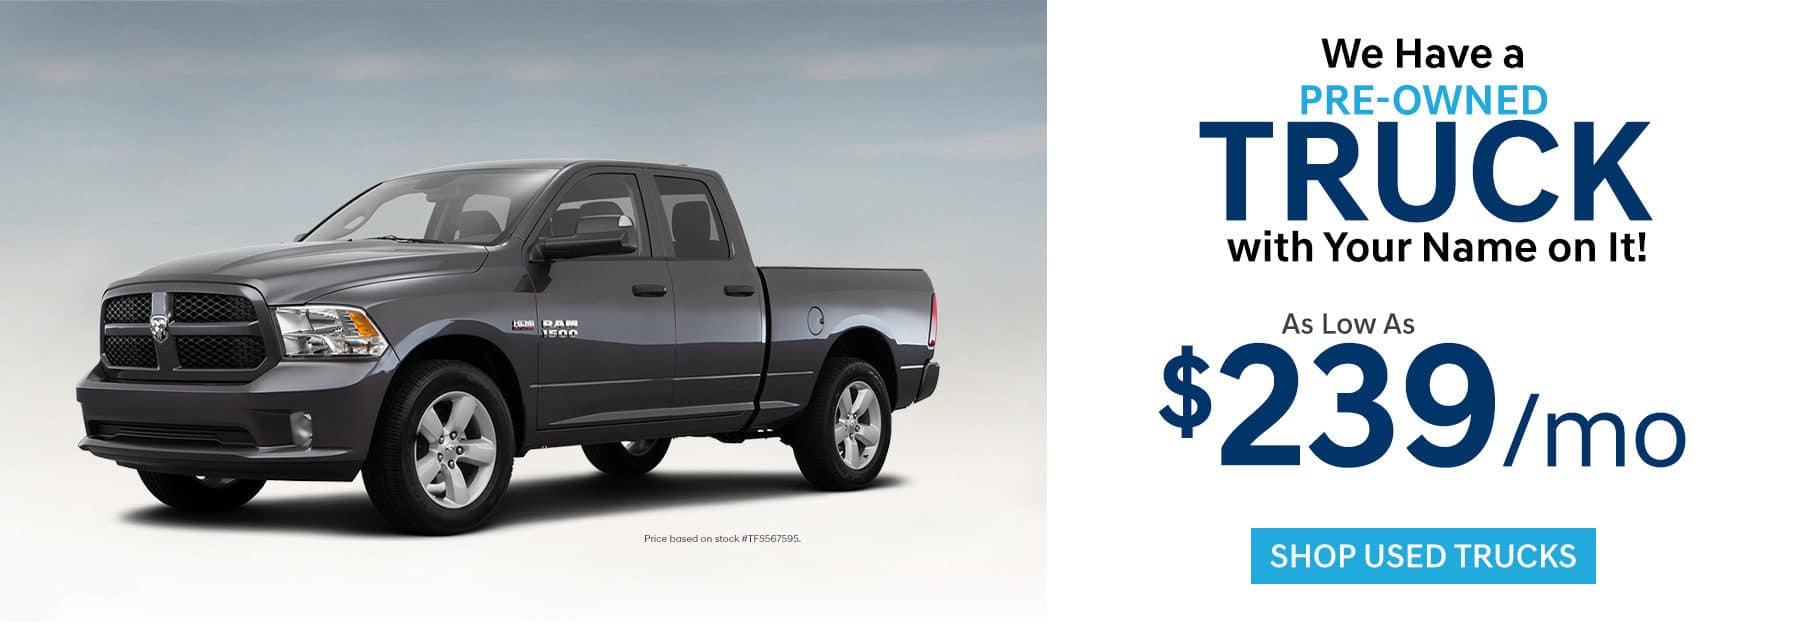 Pre-Owned Trucks for Sale in Greenville, TX